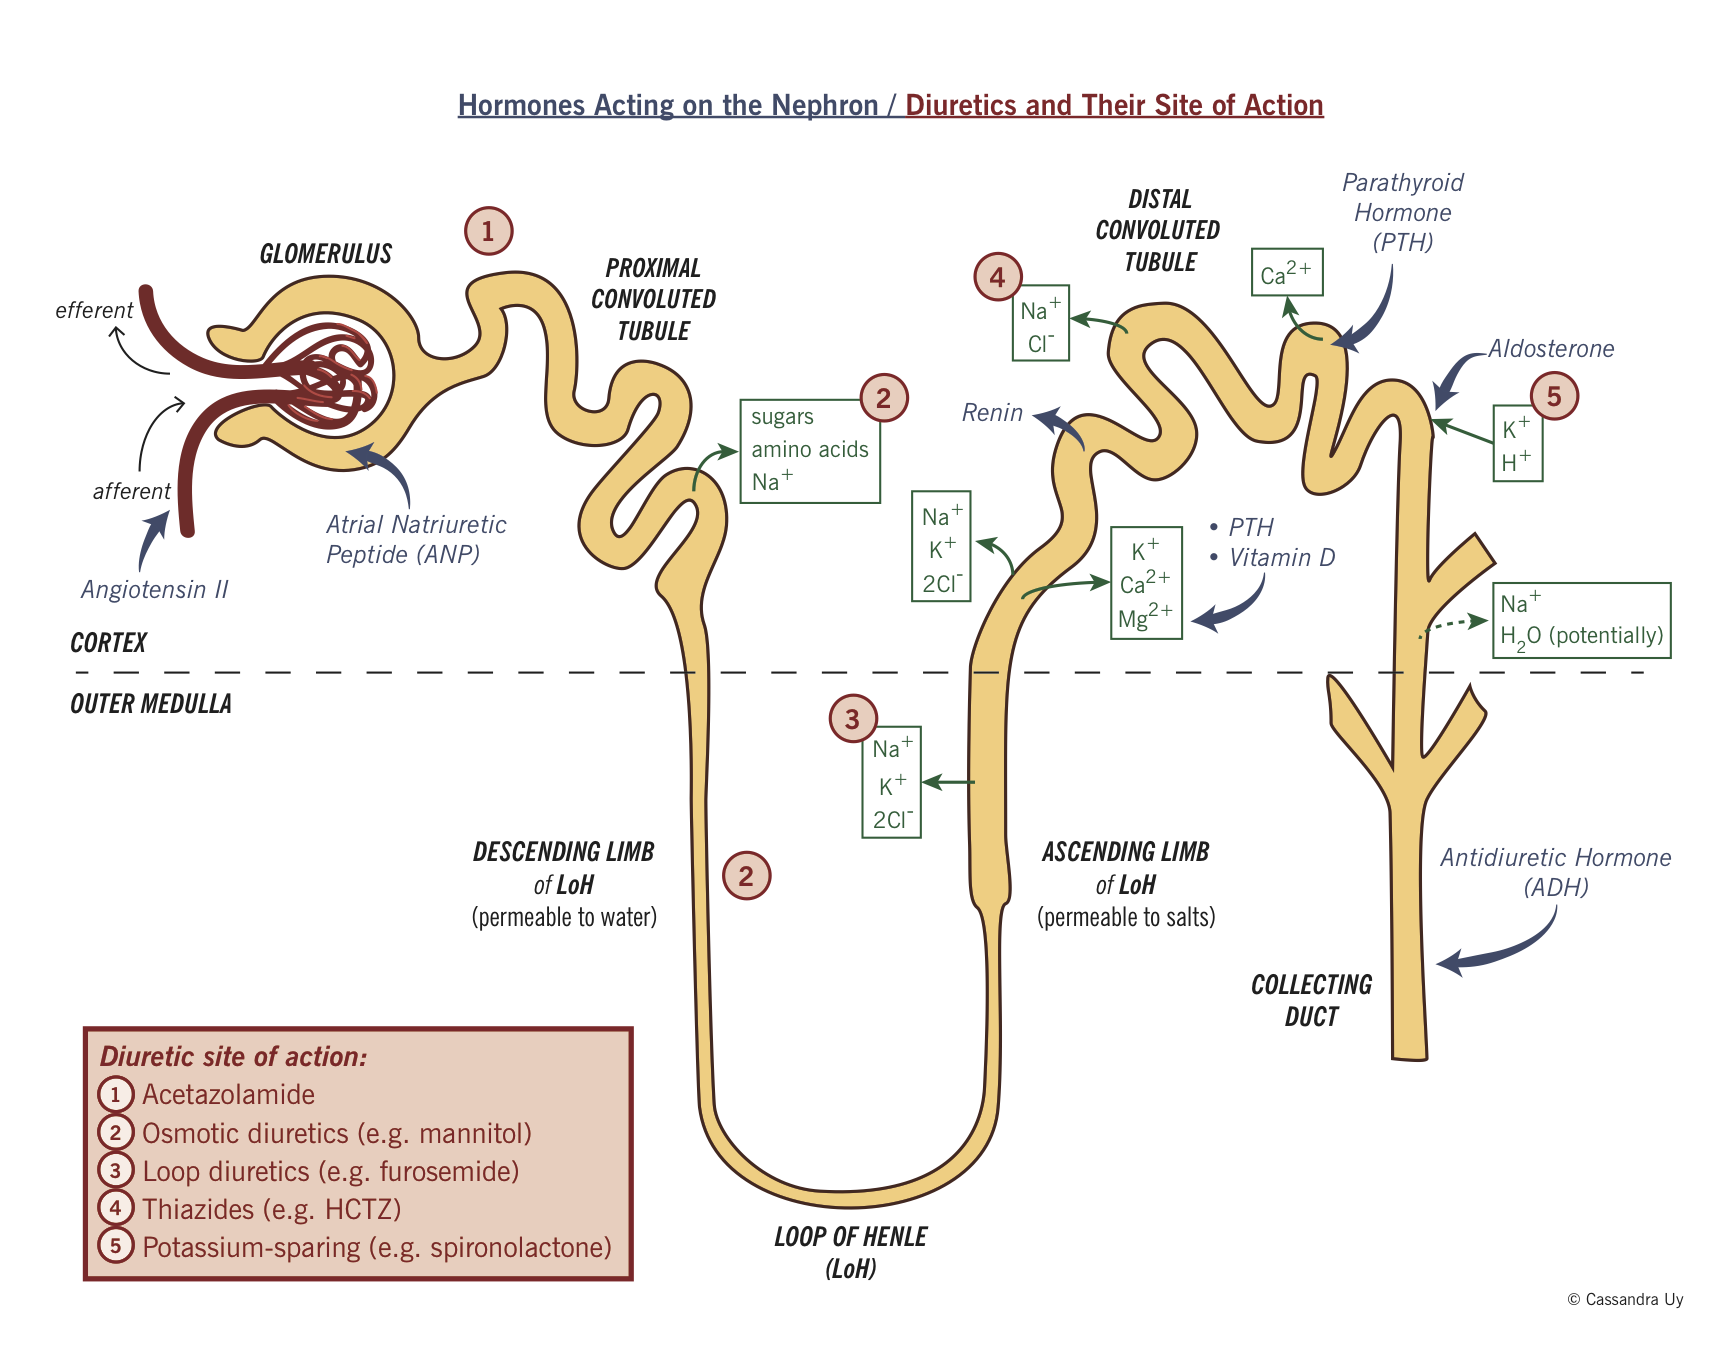 camp water system diagram introduction to renal system physiology flashcards commercial water system diagram #3